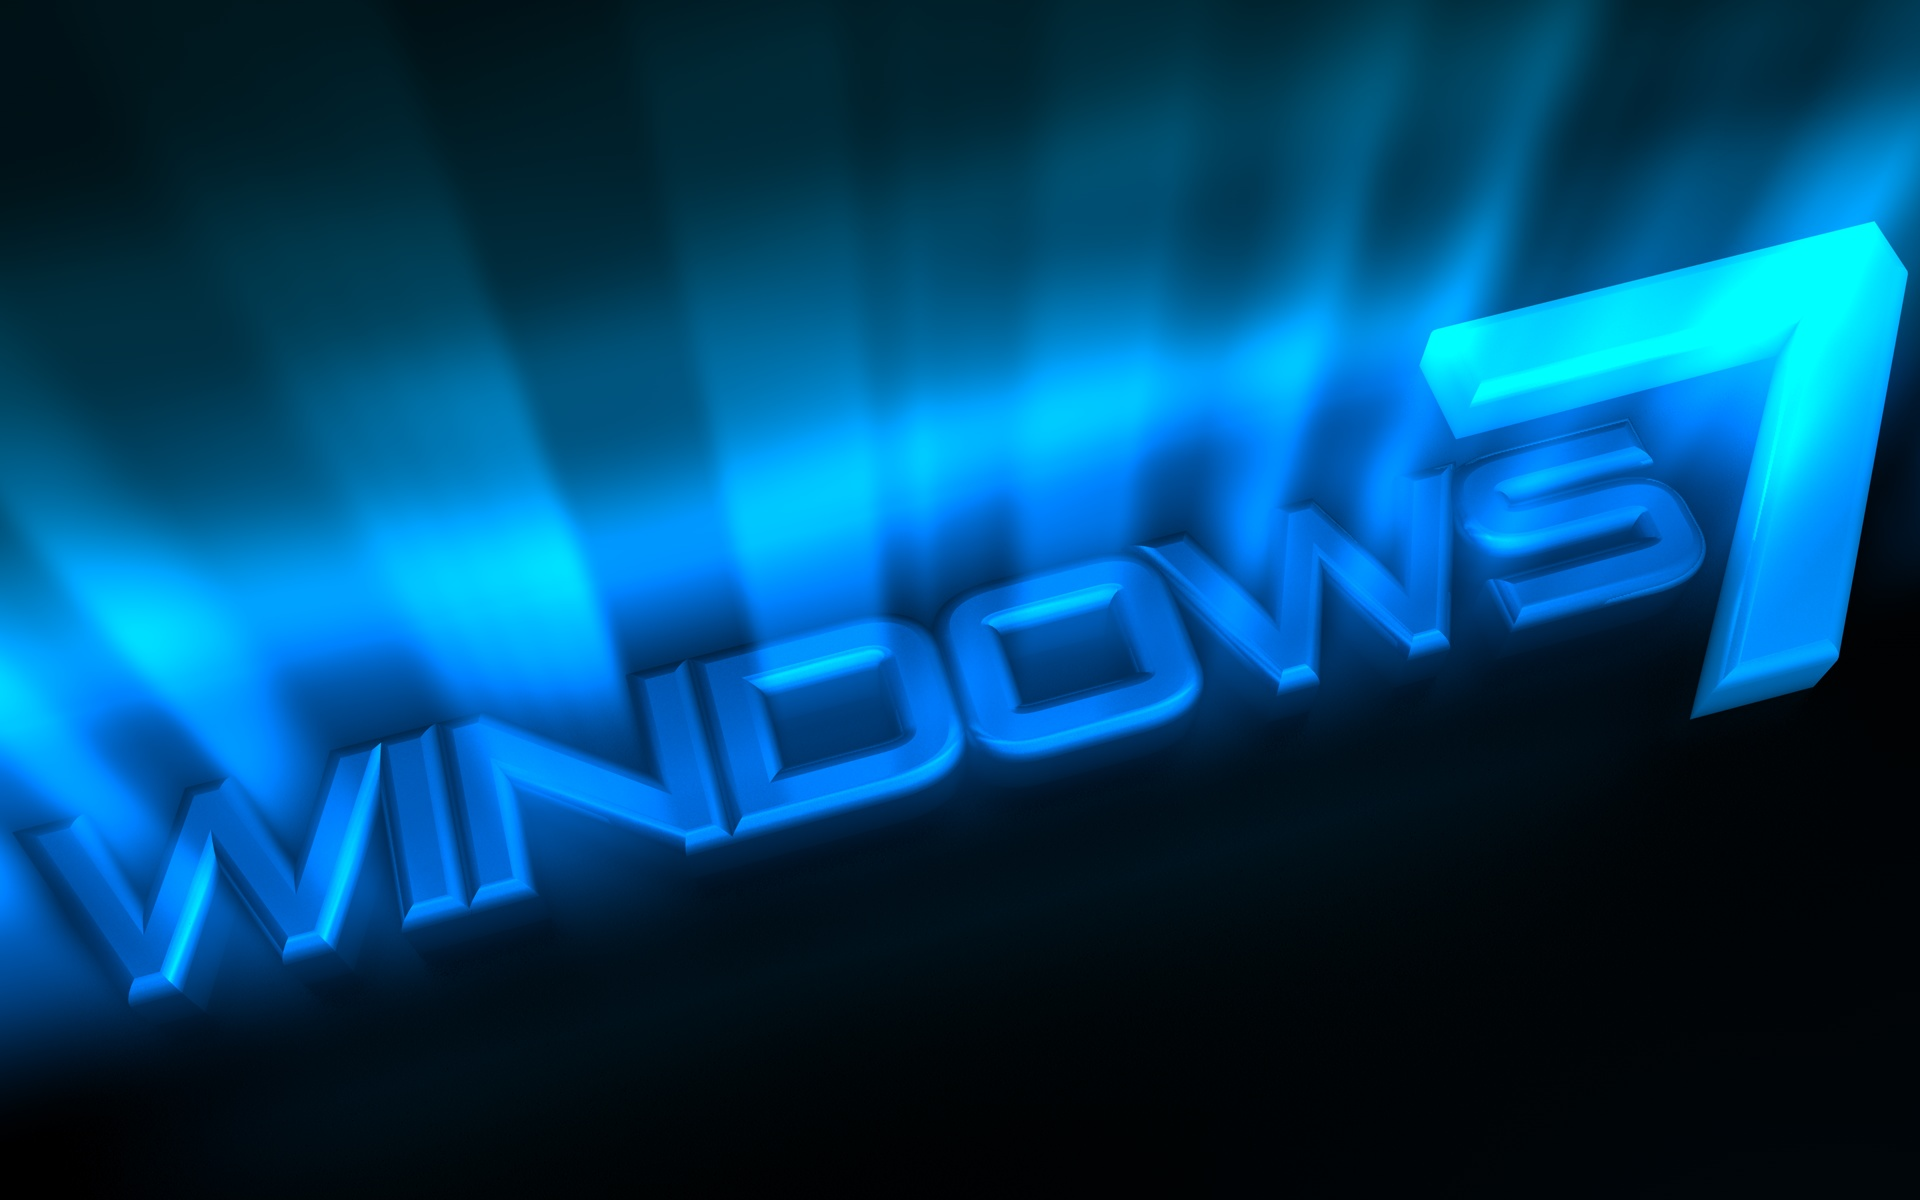 Windows7_Glow_by_rubasu